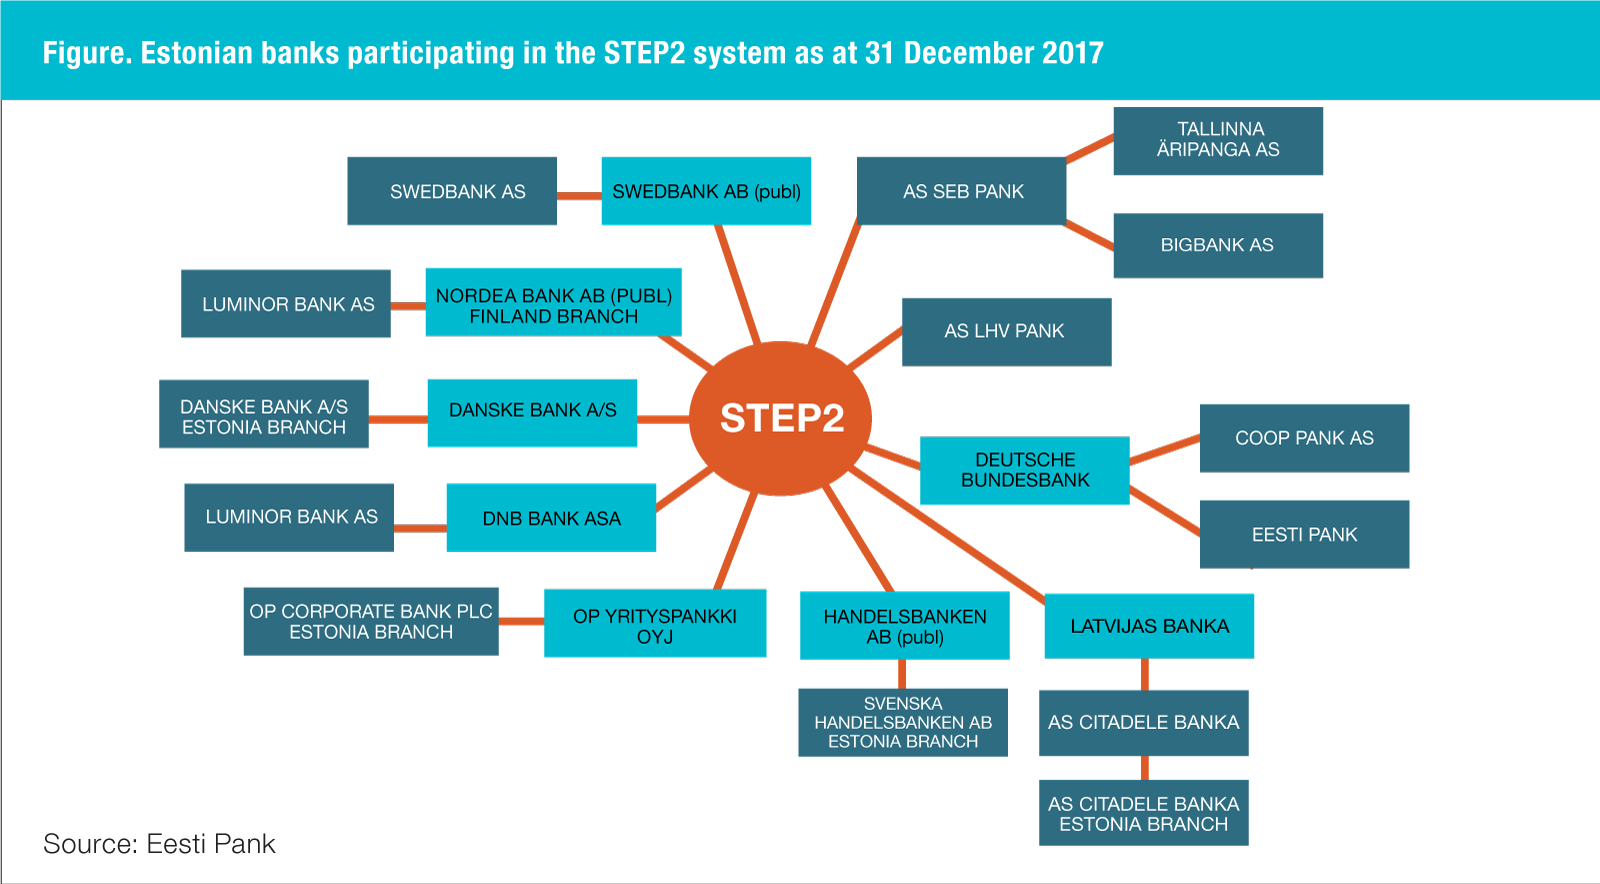 Participation of Estonian banks in the STEP2 system